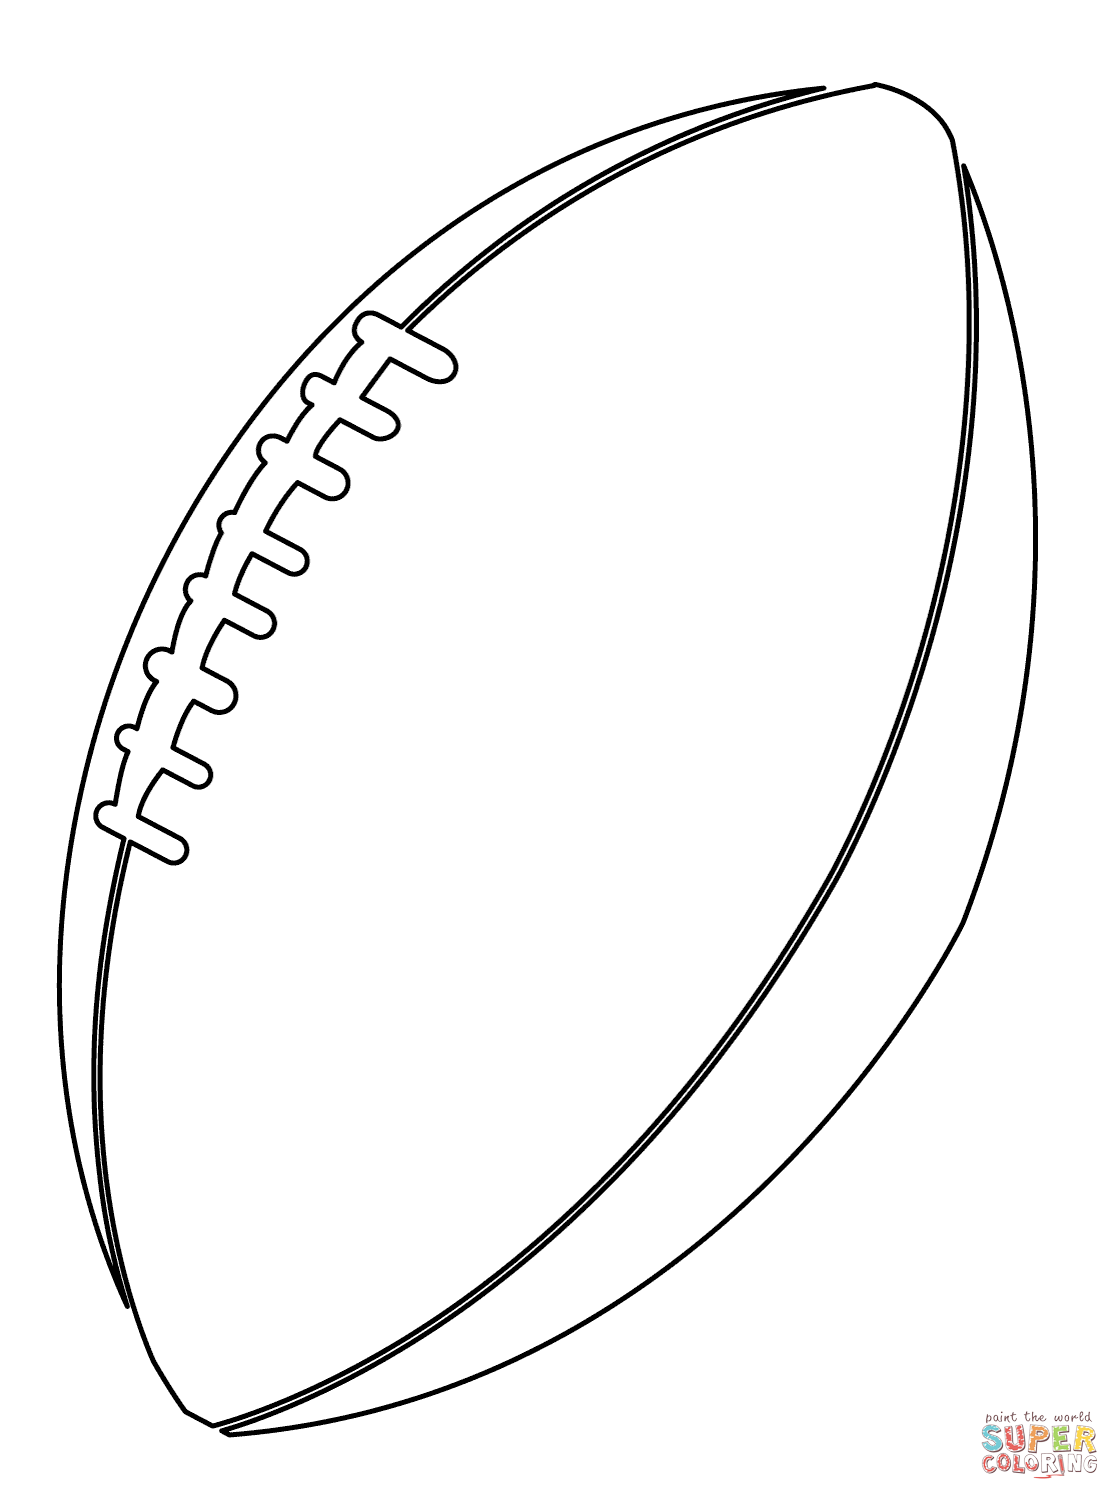 Afl Footy Colouring Pages